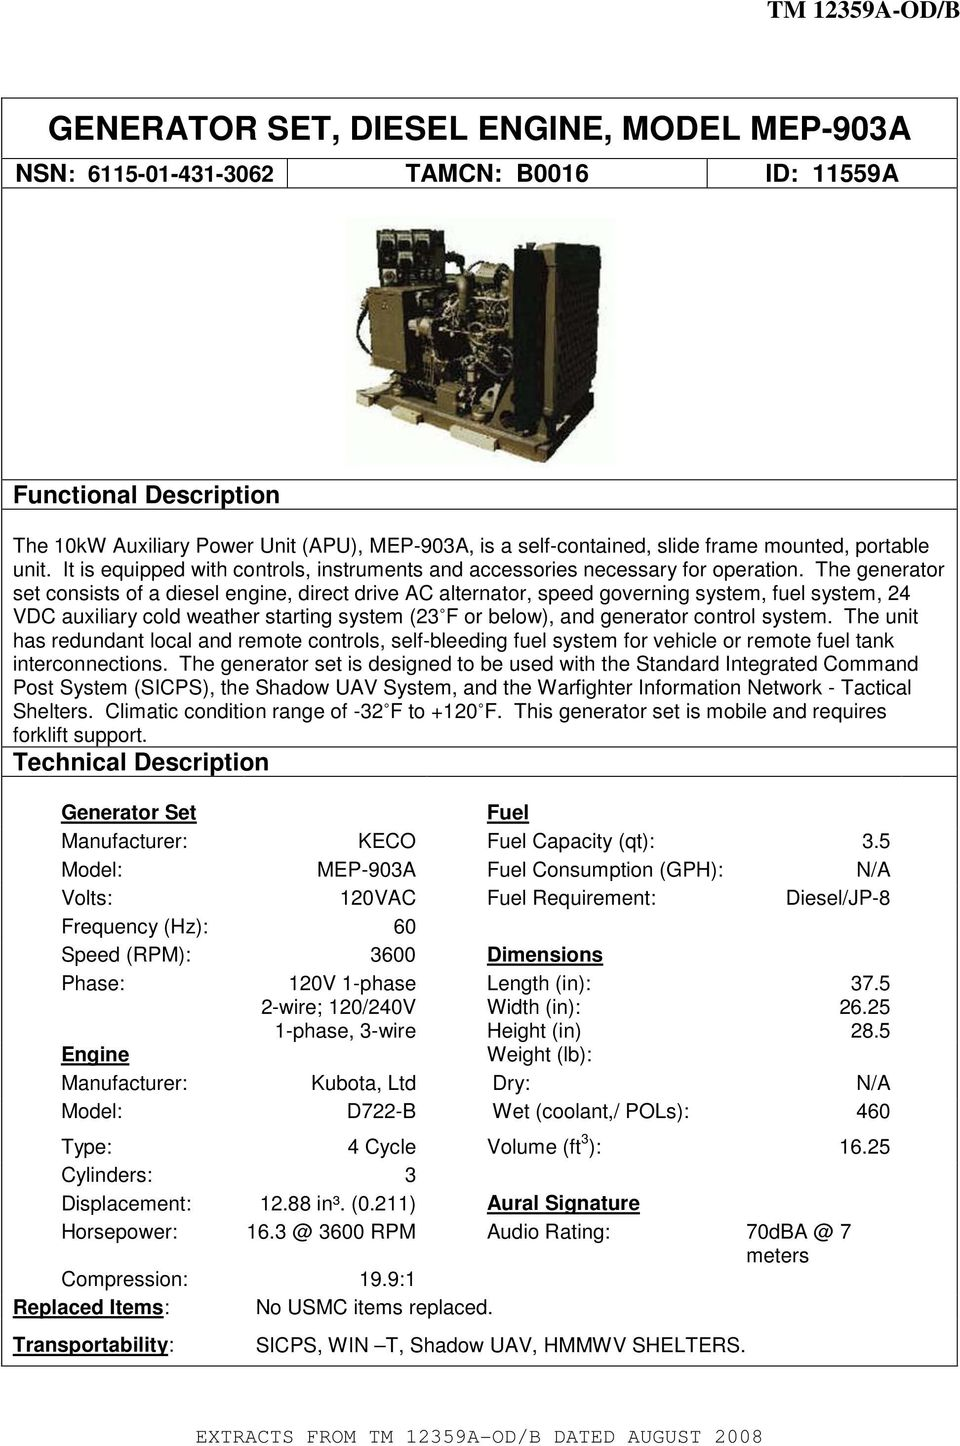 GENERATOR SET, DIESEL ENGINE, MODEL MEP-903A - PDF